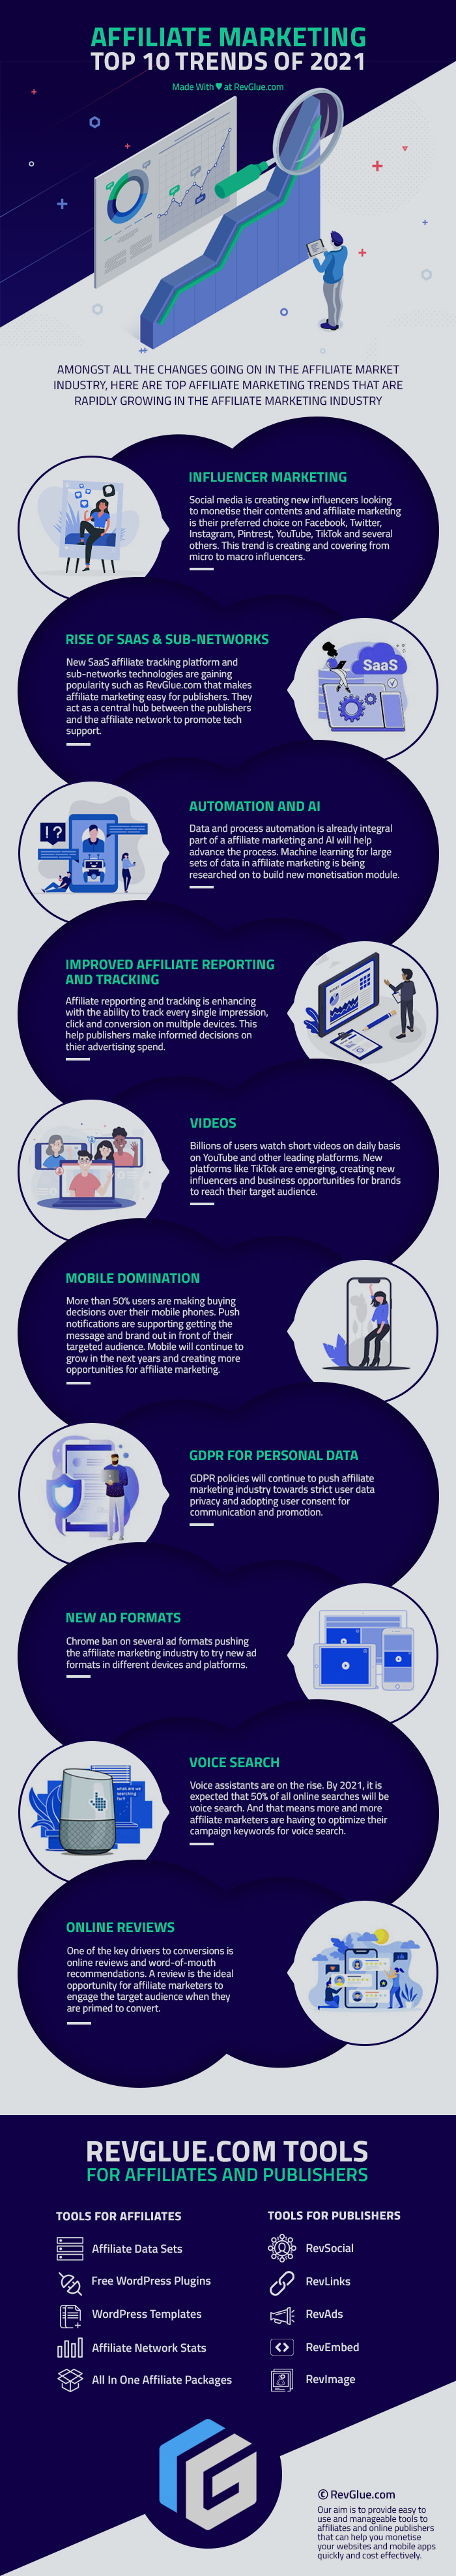 Top 10 Tends for Affiliate Marketing in 2021 Infographic